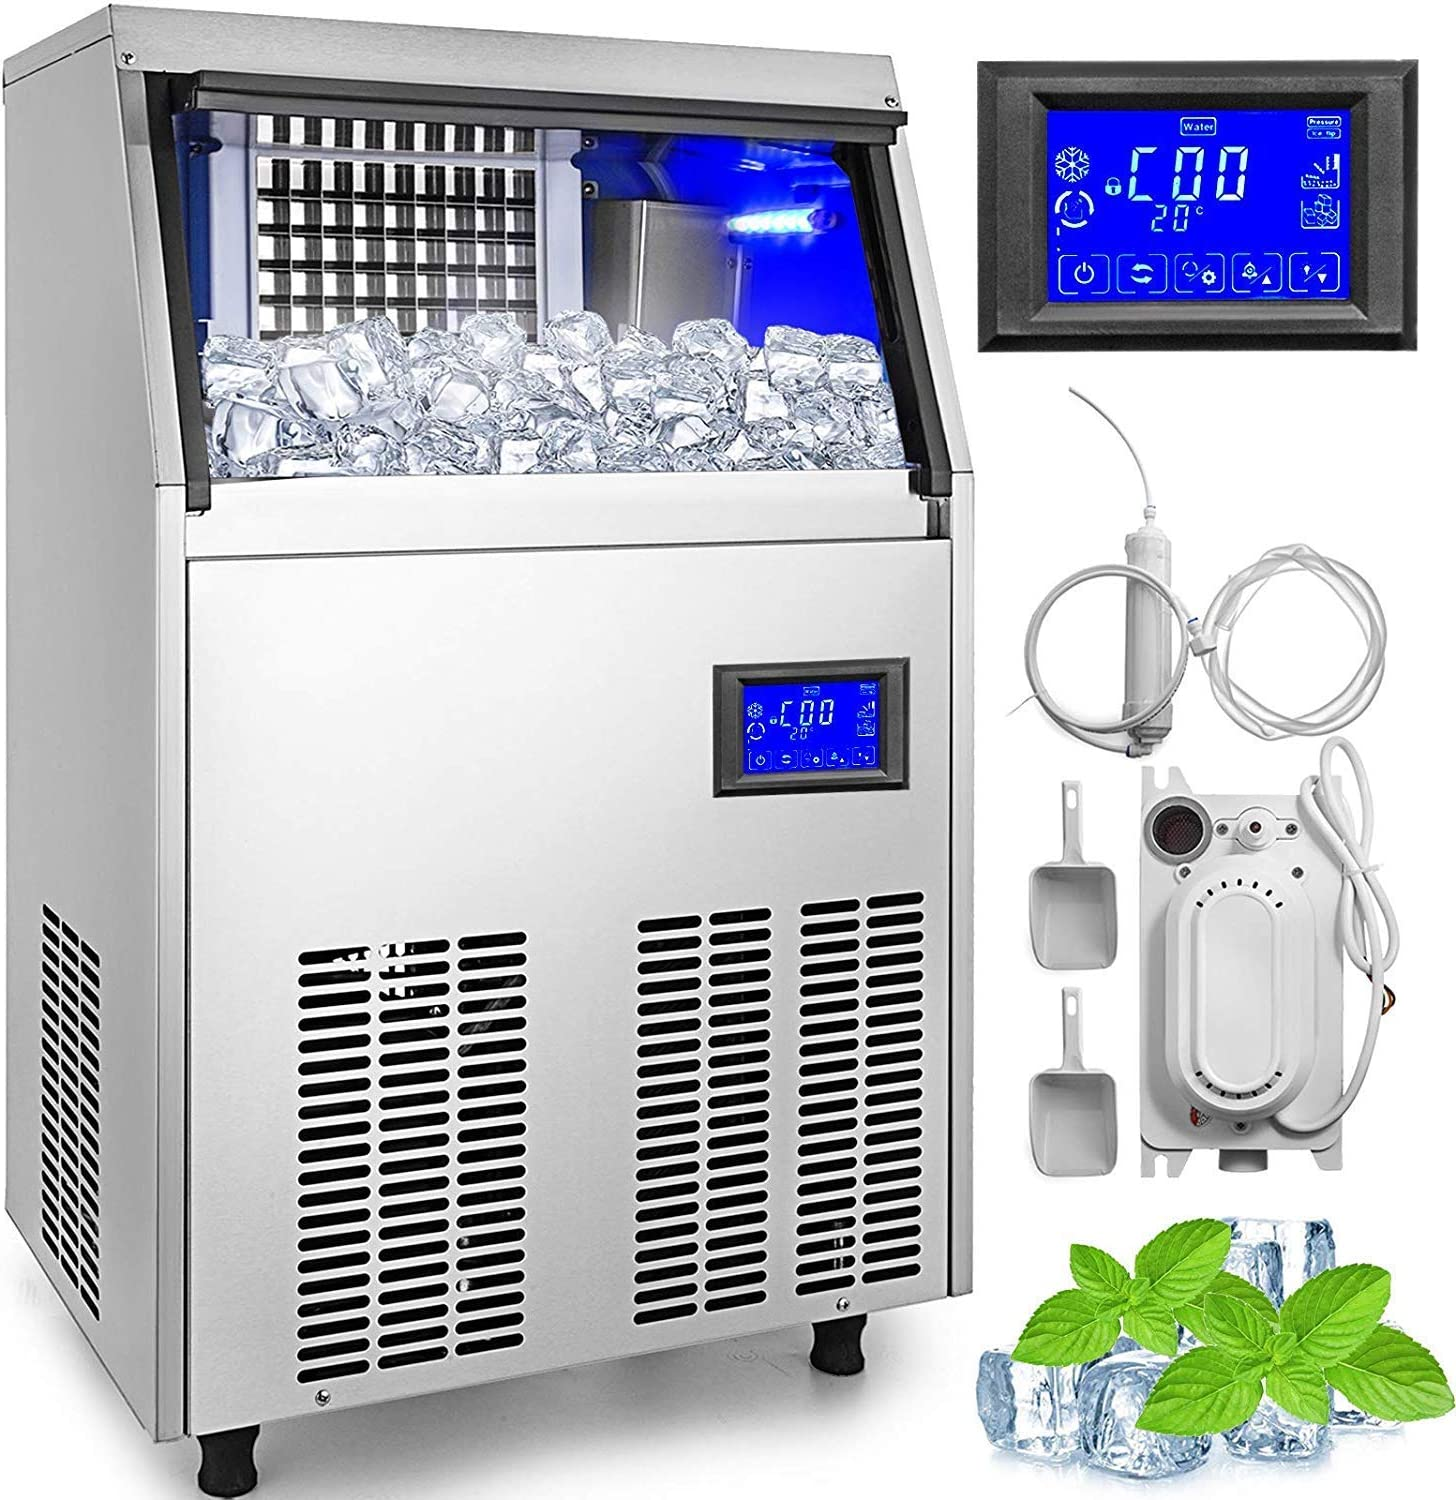 VEVOR 110V Commercial ice Maker 110-120LBS/24H with 33LBS Bin and Electric Water Drain Pump, Clear Cube, Stainless Steel Construction, Auto Operation, Include Water Filter 2 Scoops and Connection Hose